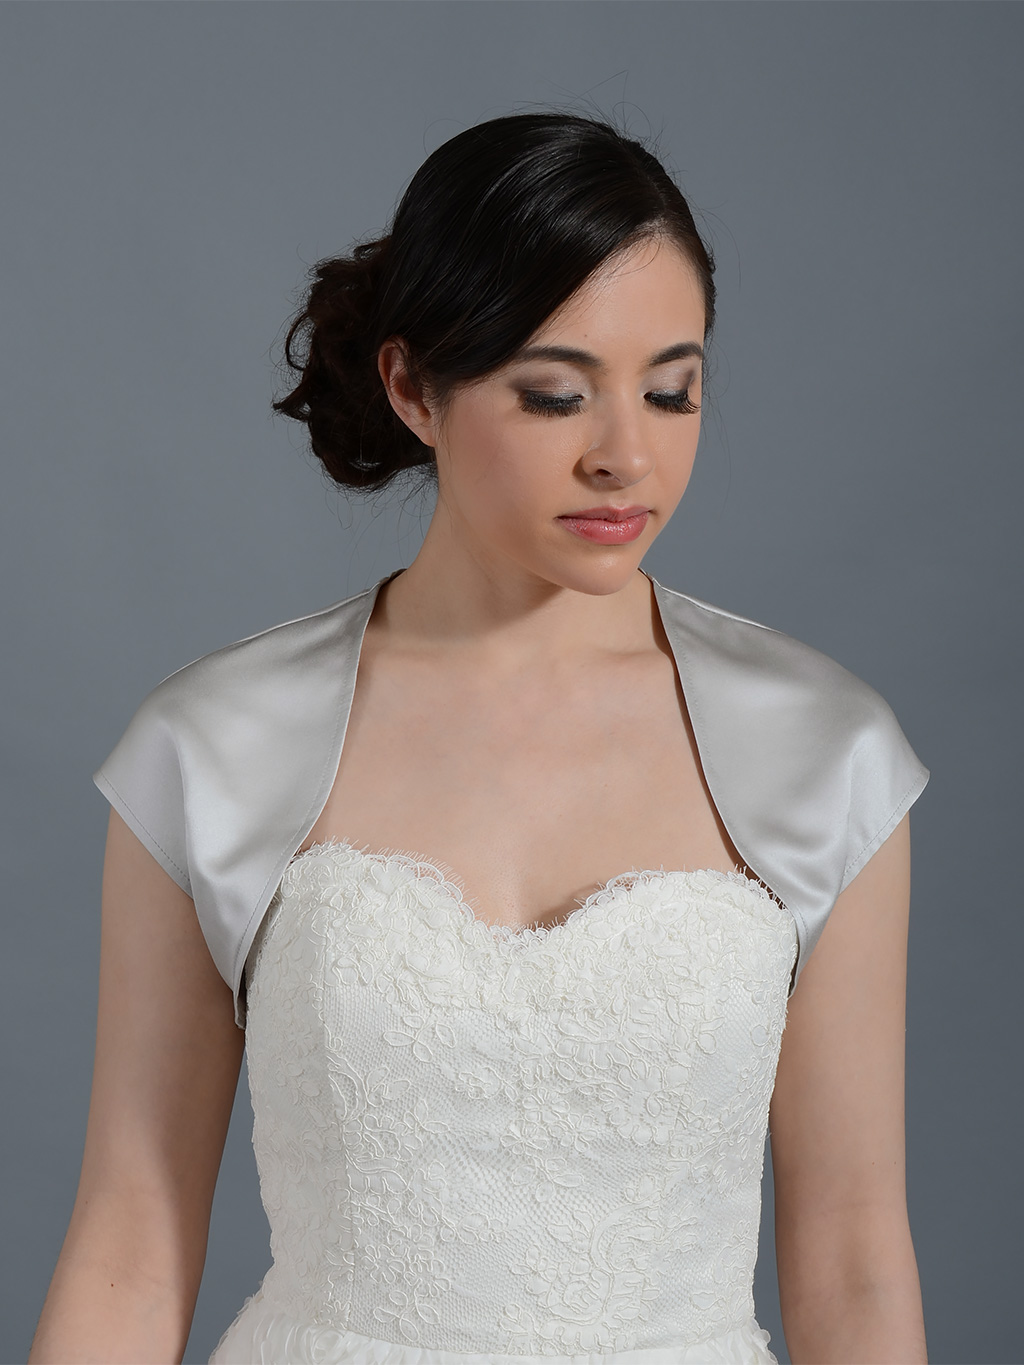 Silver sleeveless wedding satin bolero jacket